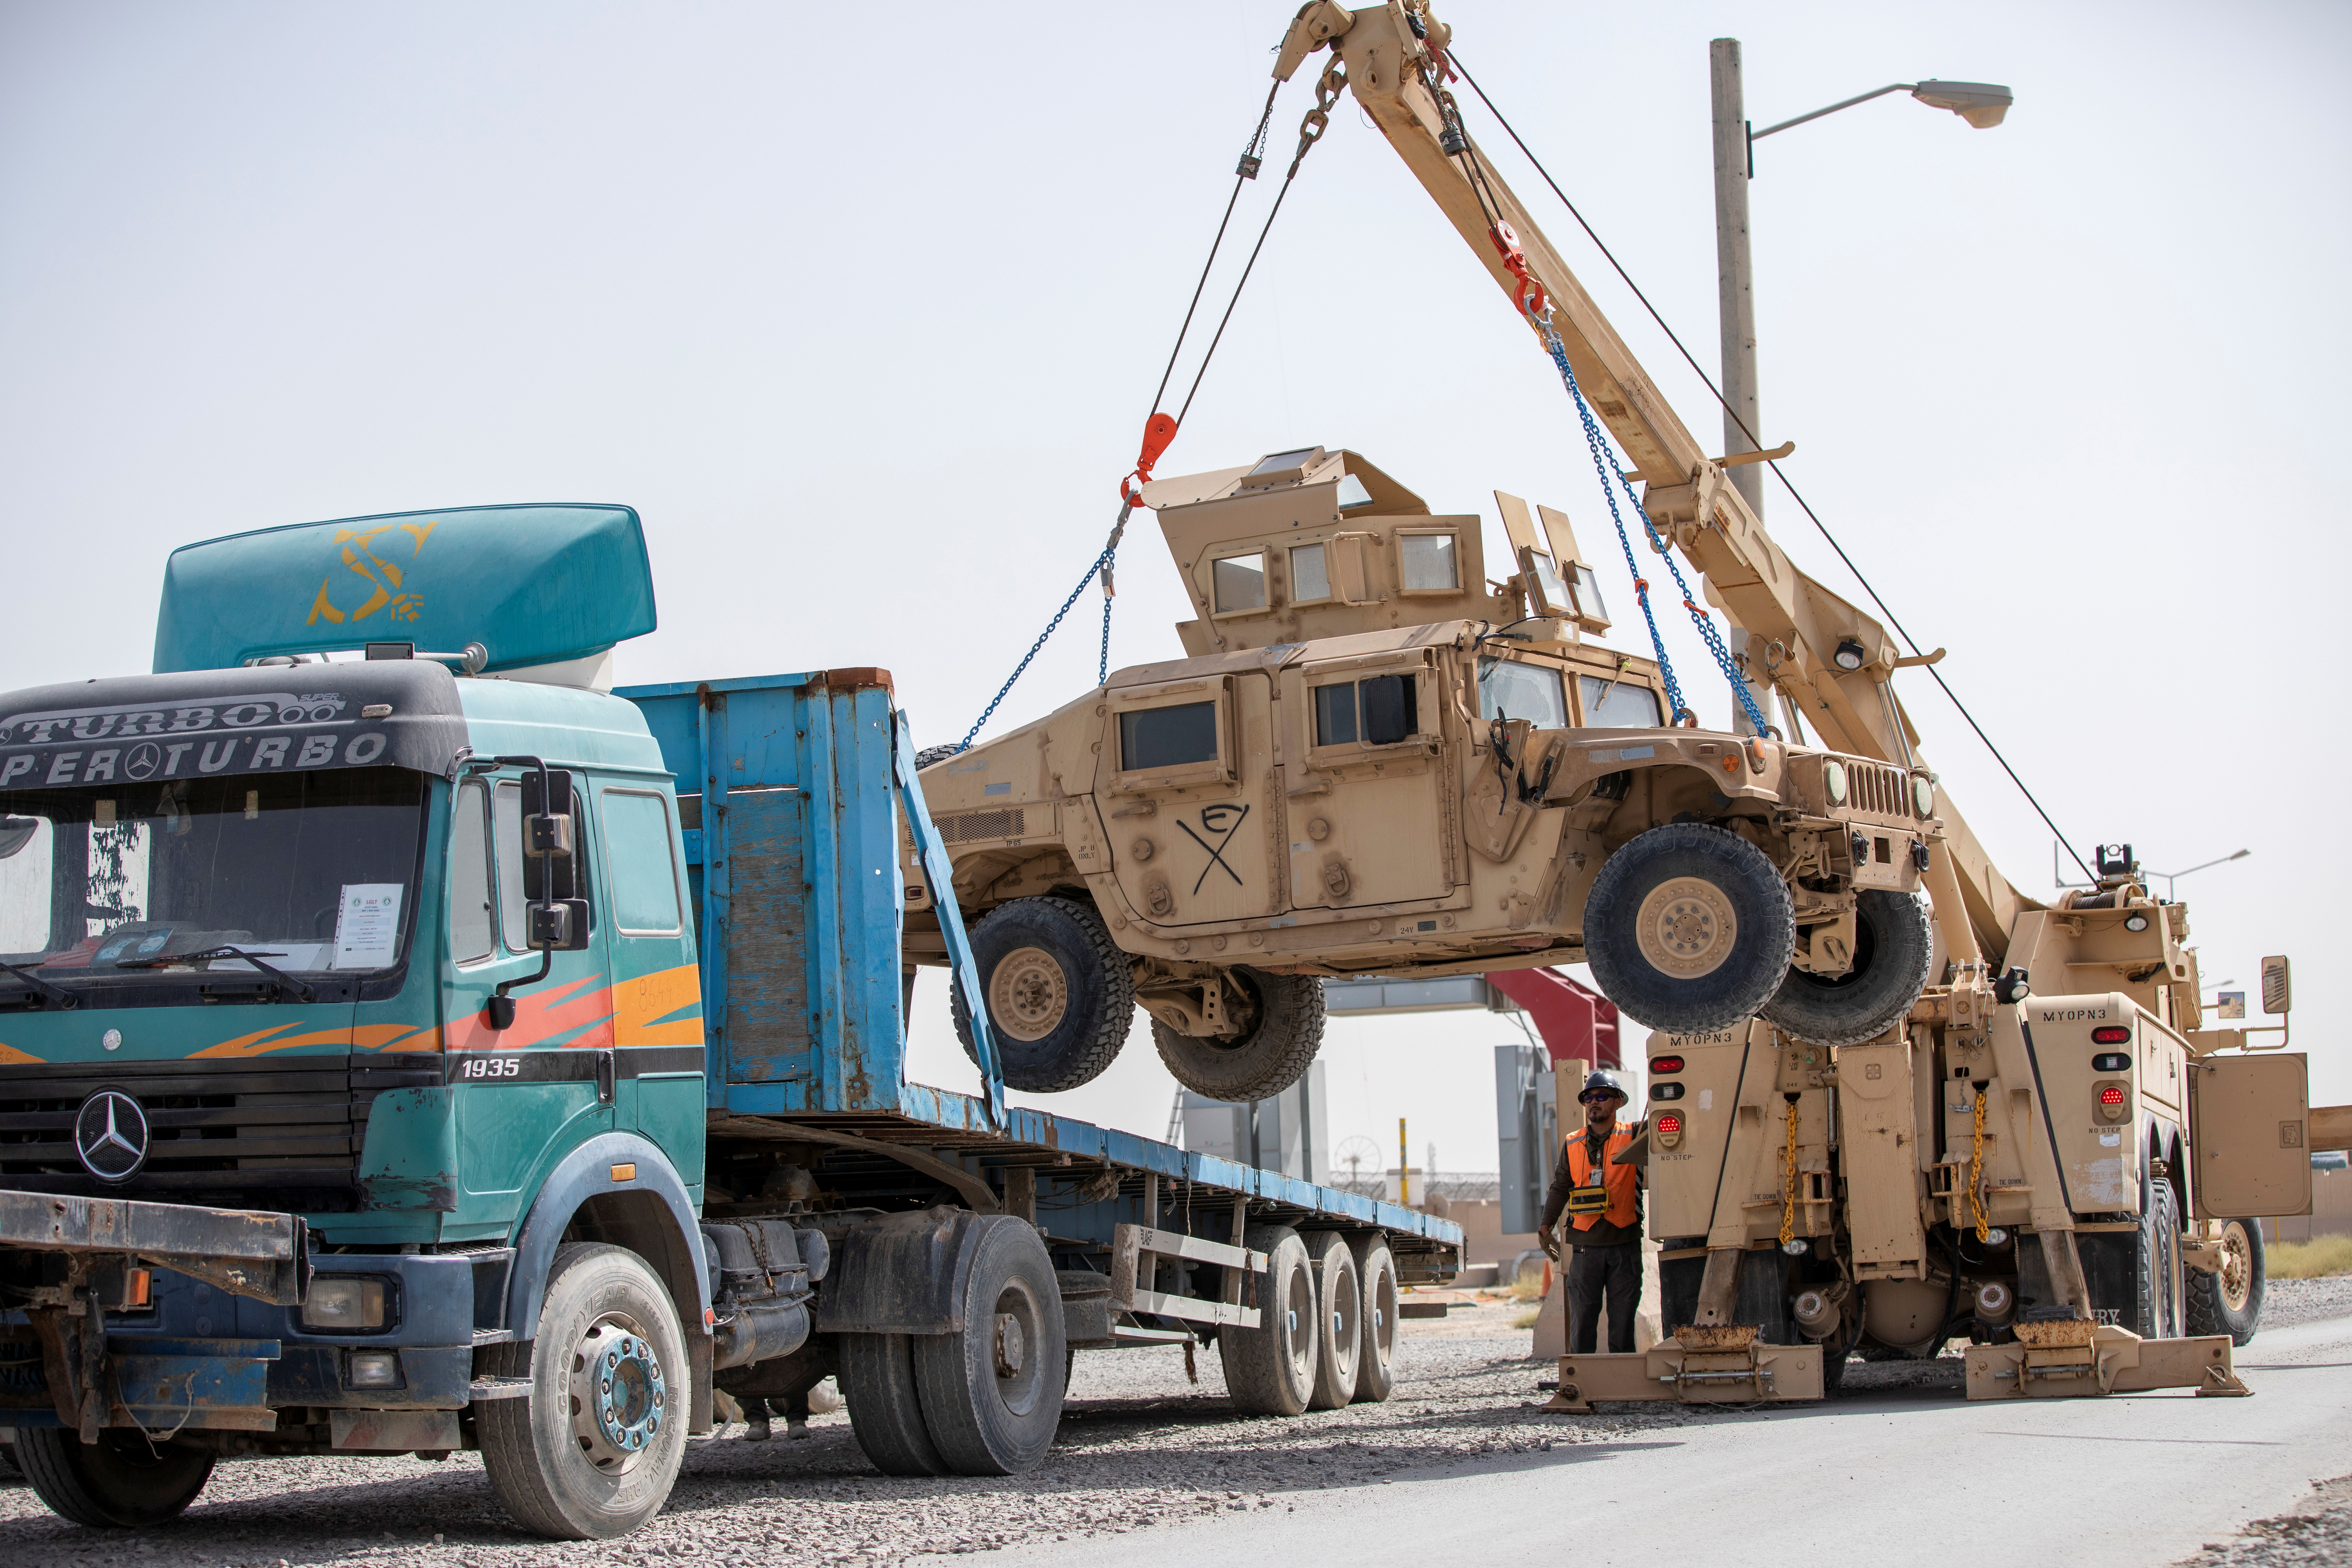 U.S. Army soldiers and contractors load High Mobility Multi-purposed Wheeled Vehicles, HUMVs, to be sent for transport as U.S. forces prepare for withdrawl, in Kandahar, Afghanistan, July 13, 2020. Picture taken July 13, 2020. U.S. Army/Sgt. Jeffery J. Harris/Handout via REUTERS THIS IMAGE HAS BEEN SUPPLIED BY A THIRD PARTY.